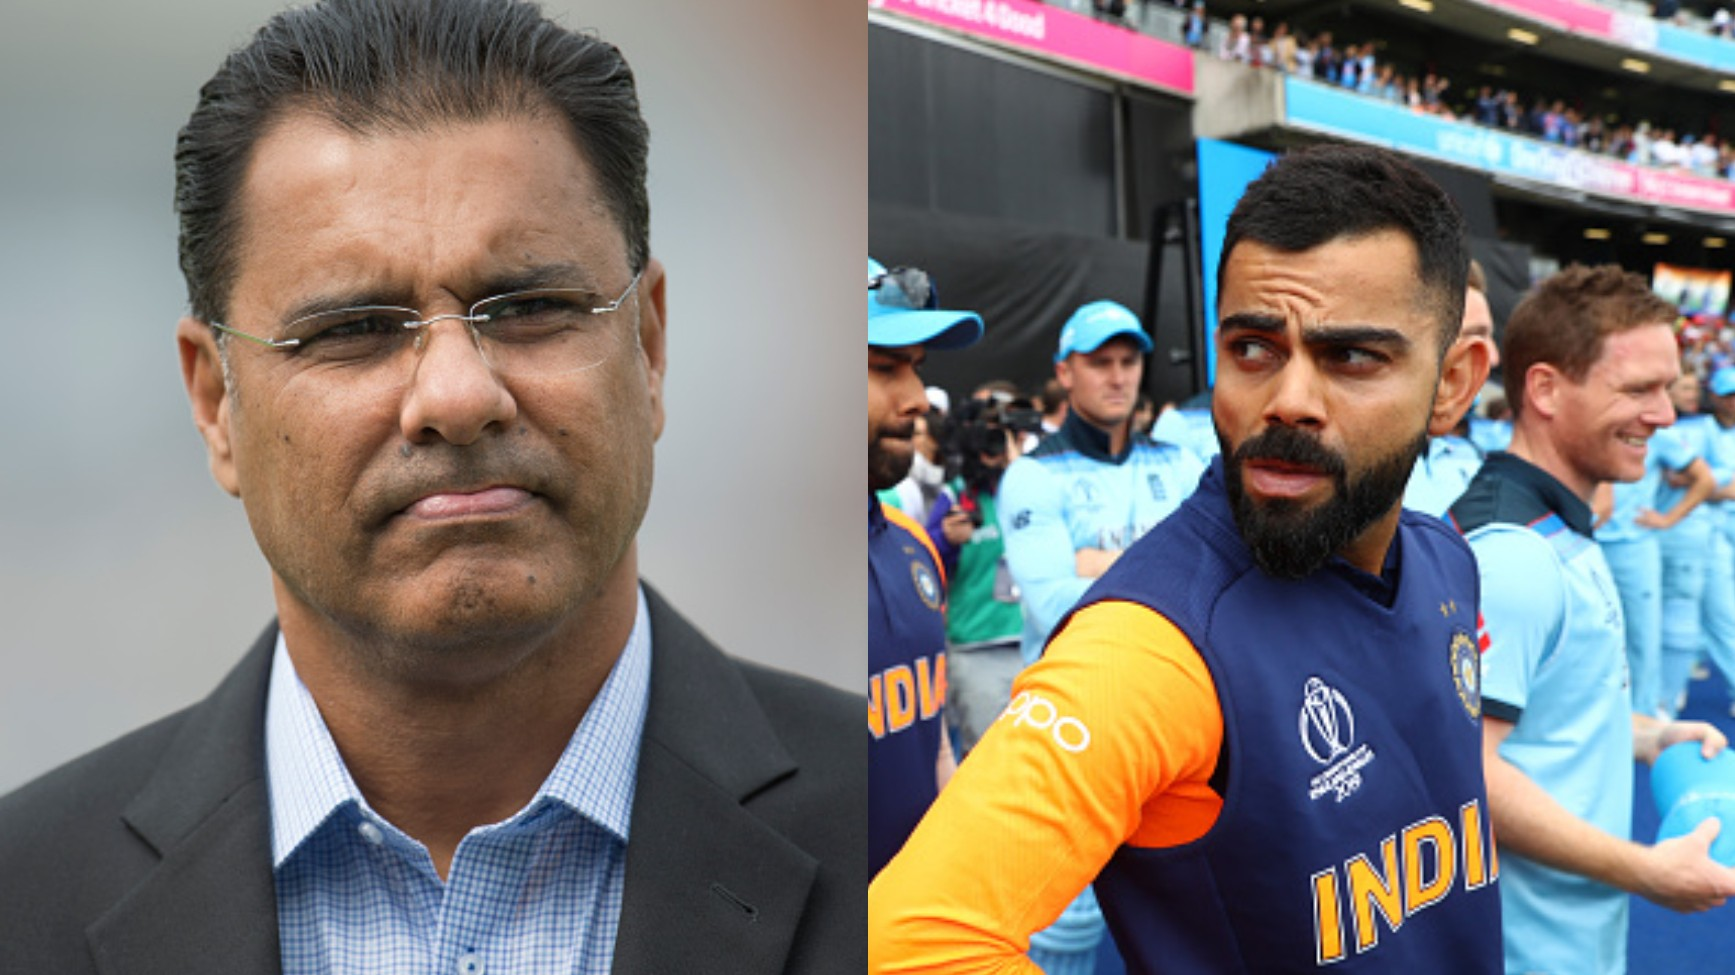 CWC 2019: Fans criticize Waqar Younis for suggesting that India-England match was fixed